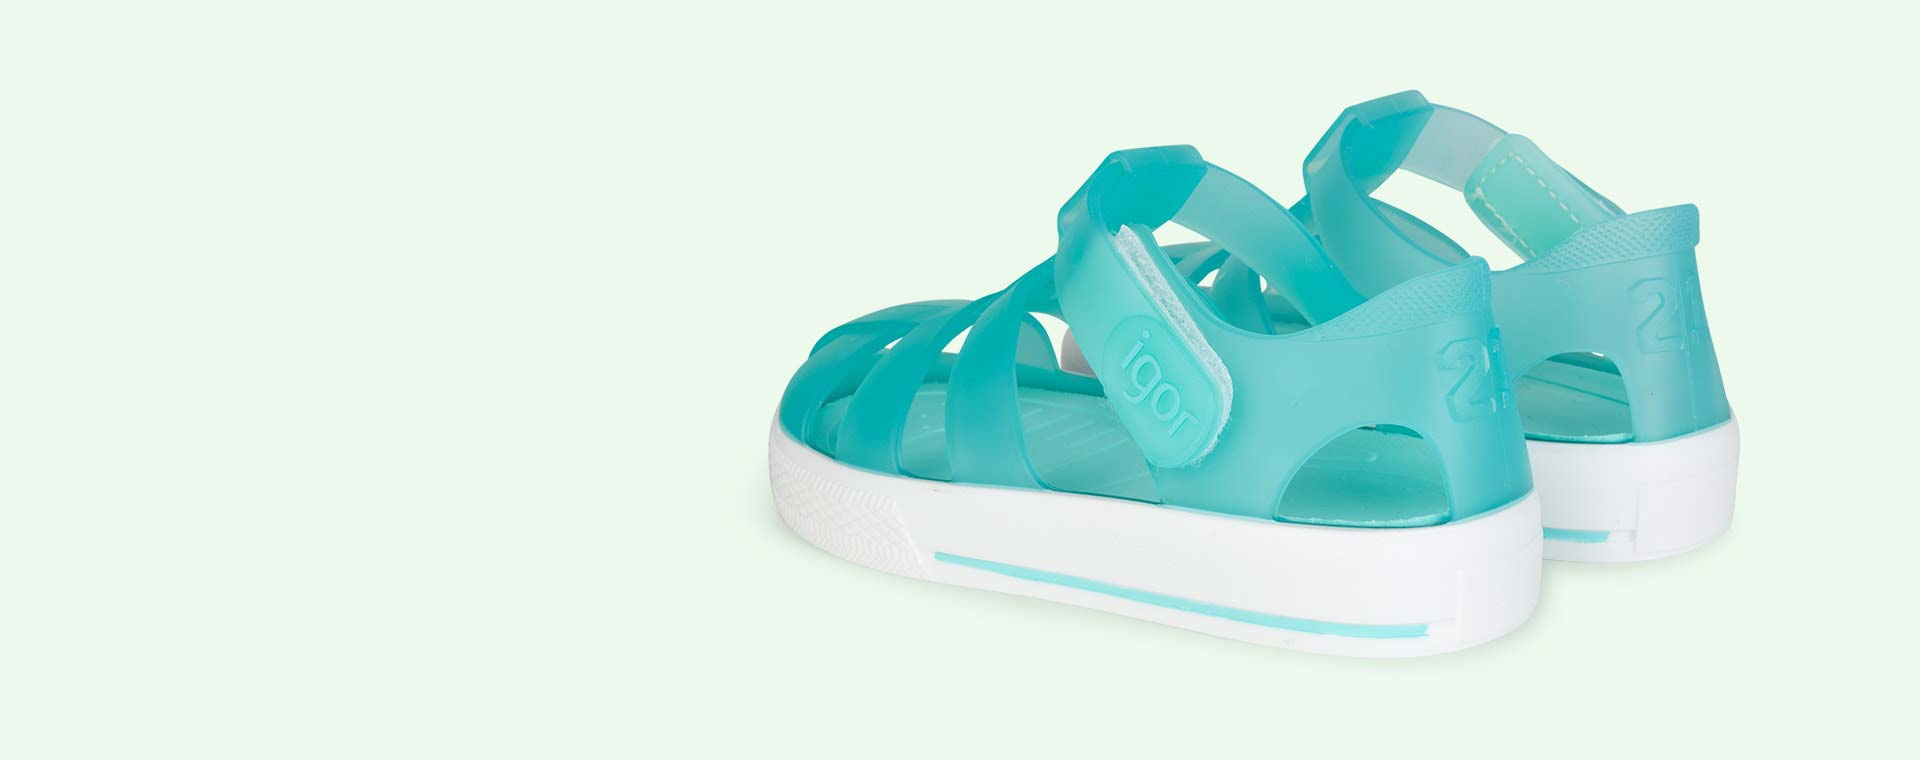 Aguamarina igor Star Velcro Jelly shoes